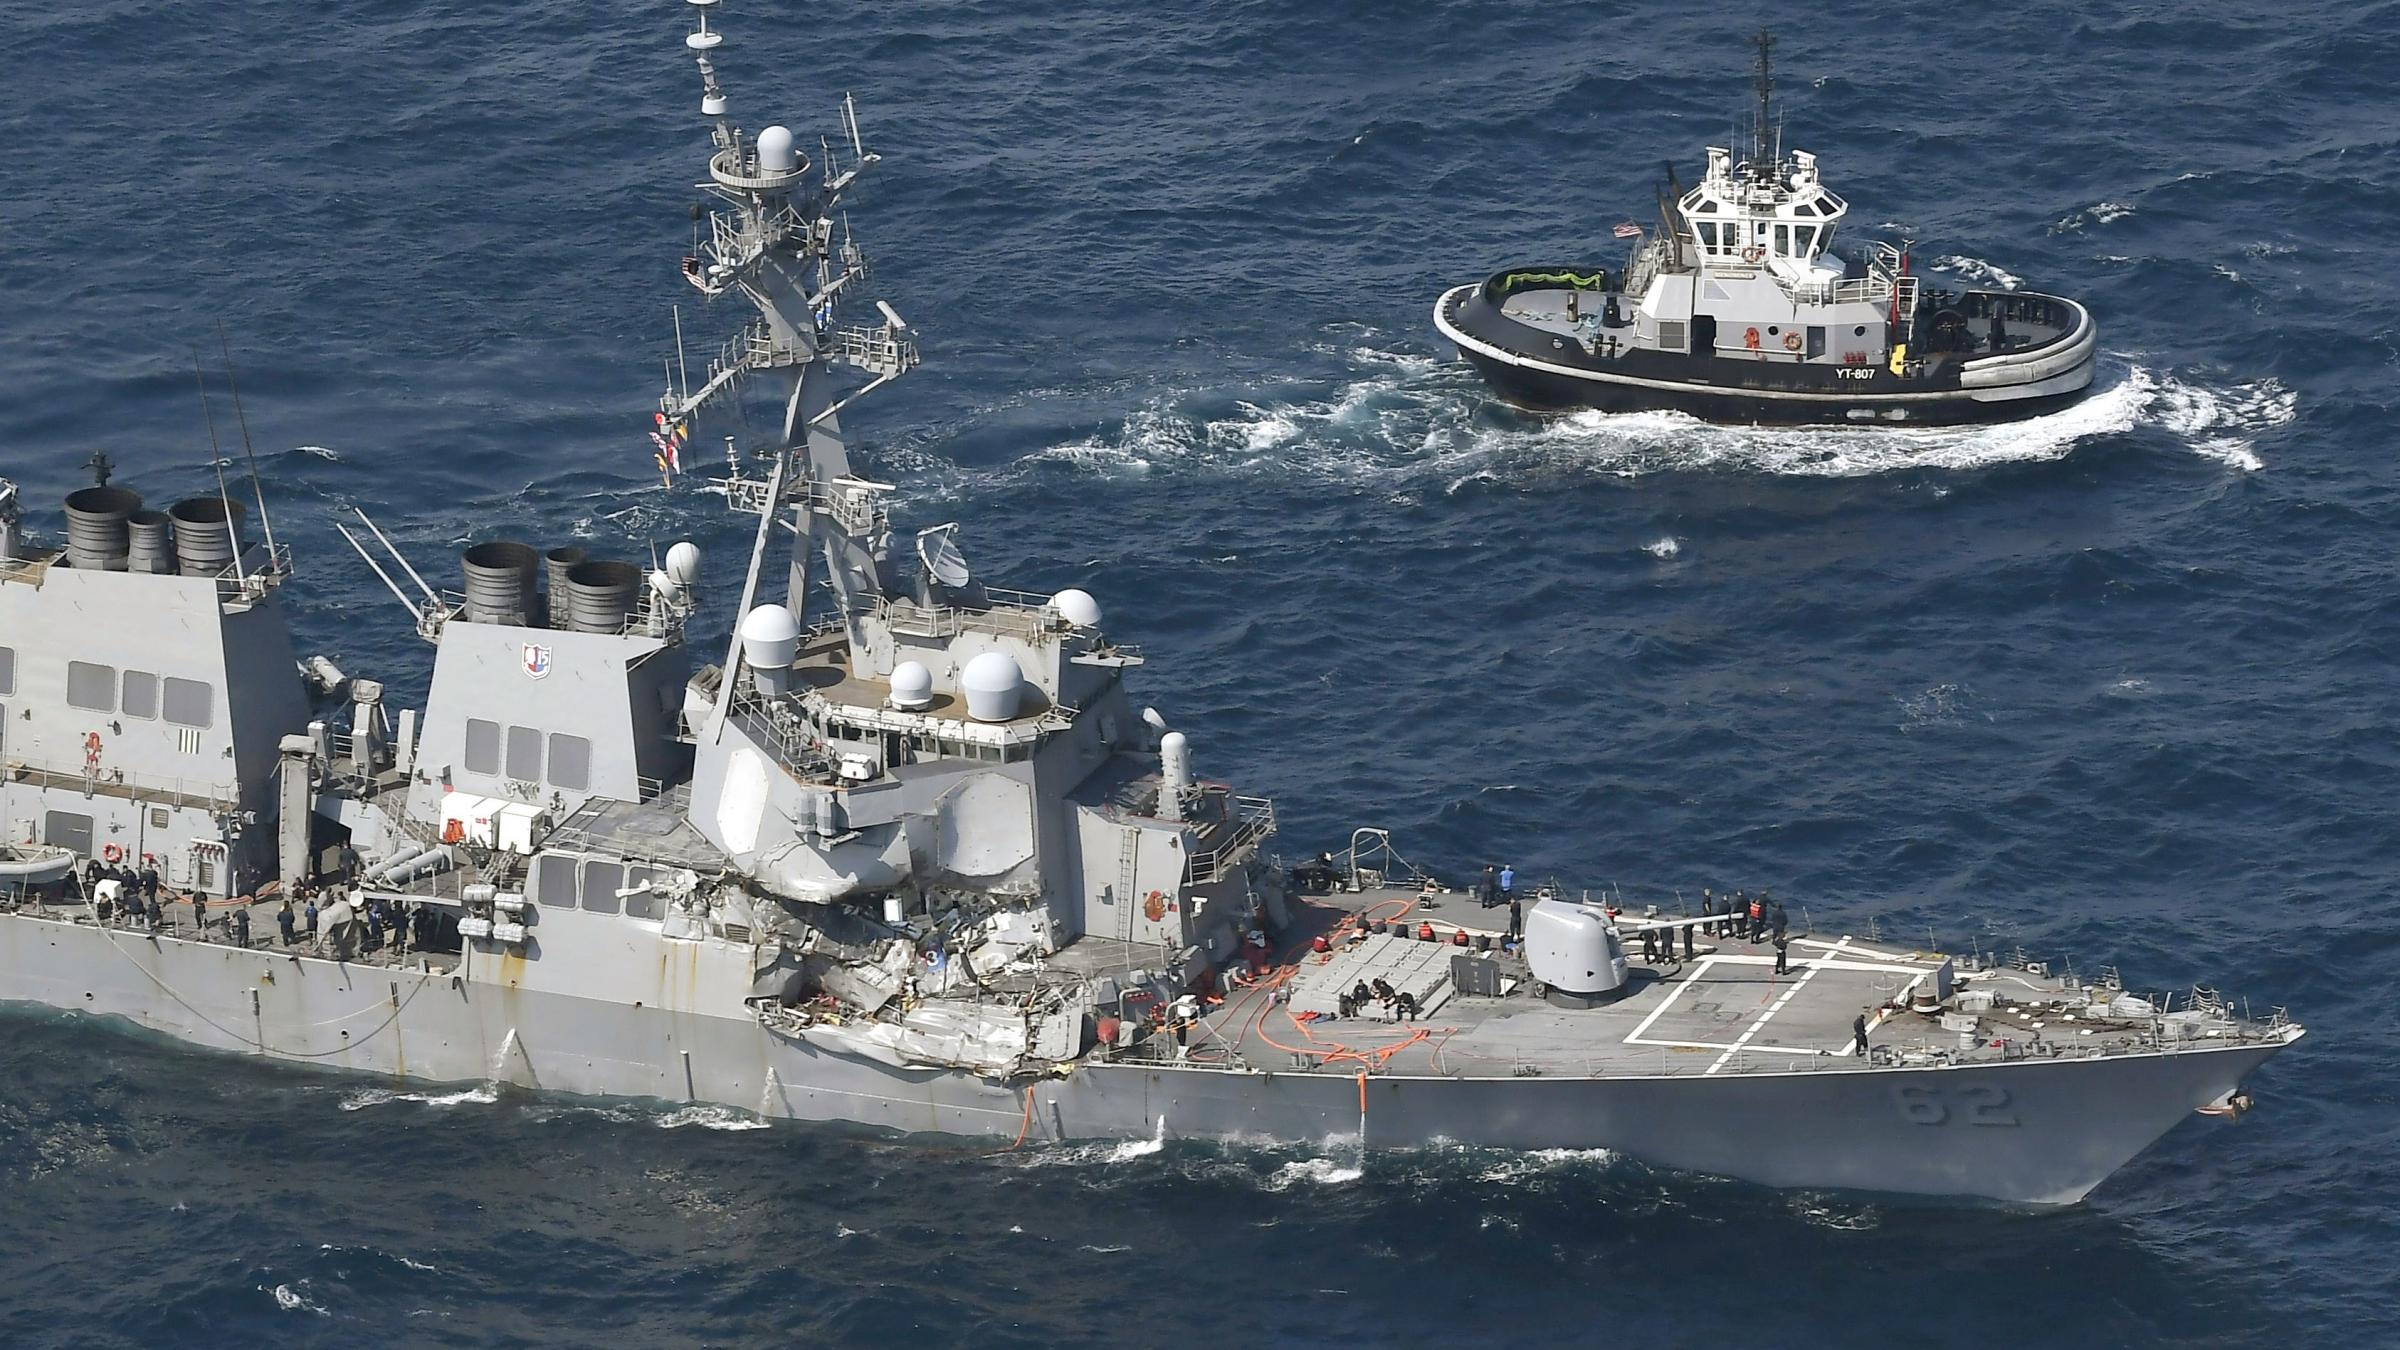 US Navy Destroyer Collides With Merchant Vessel Off Coast Of Japan